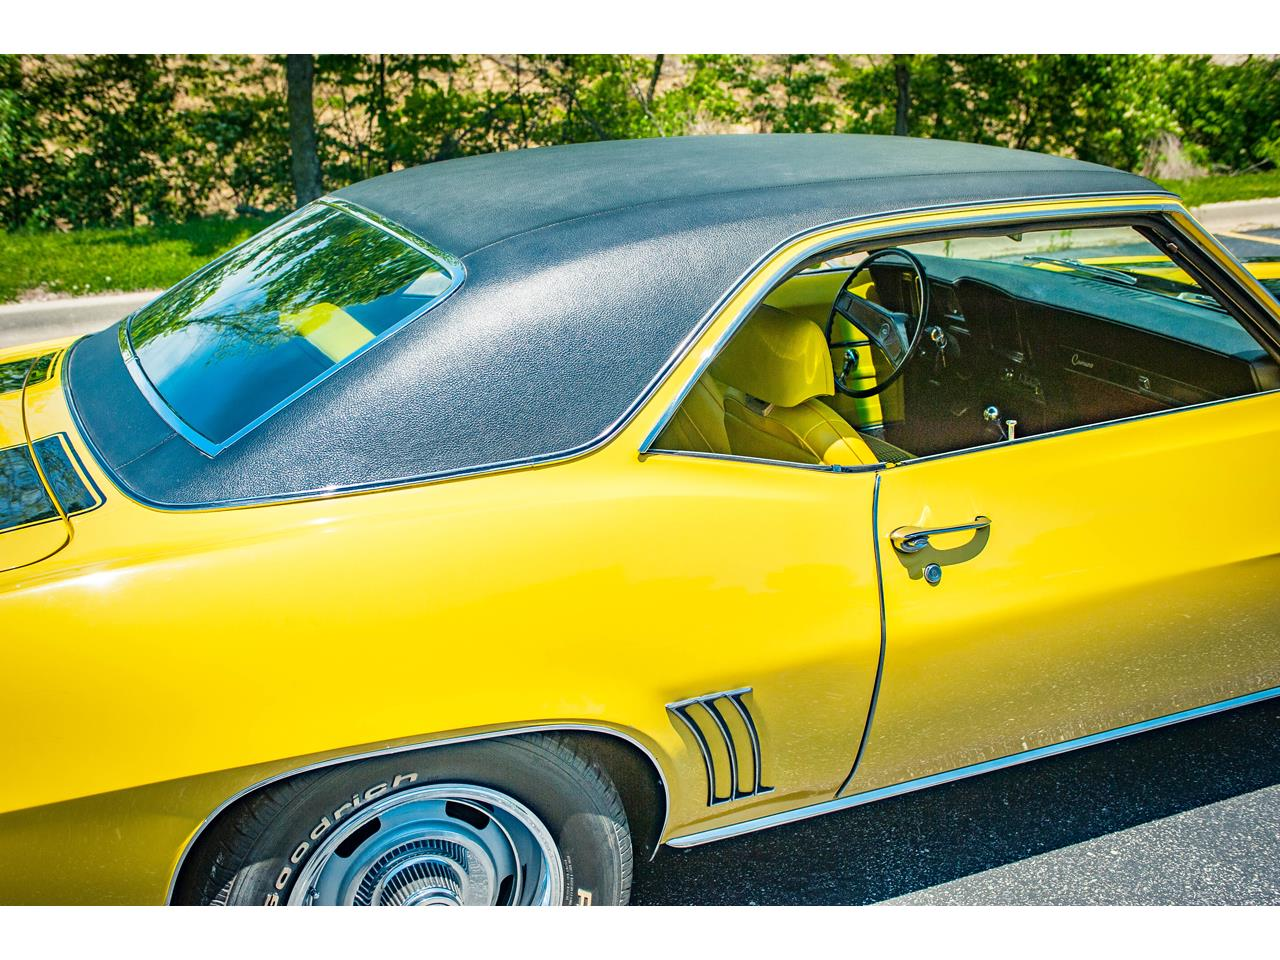 Large Picture of Classic '69 Camaro located in O'Fallon Illinois Offered by Gateway Classic Cars - St. Louis - QB9B